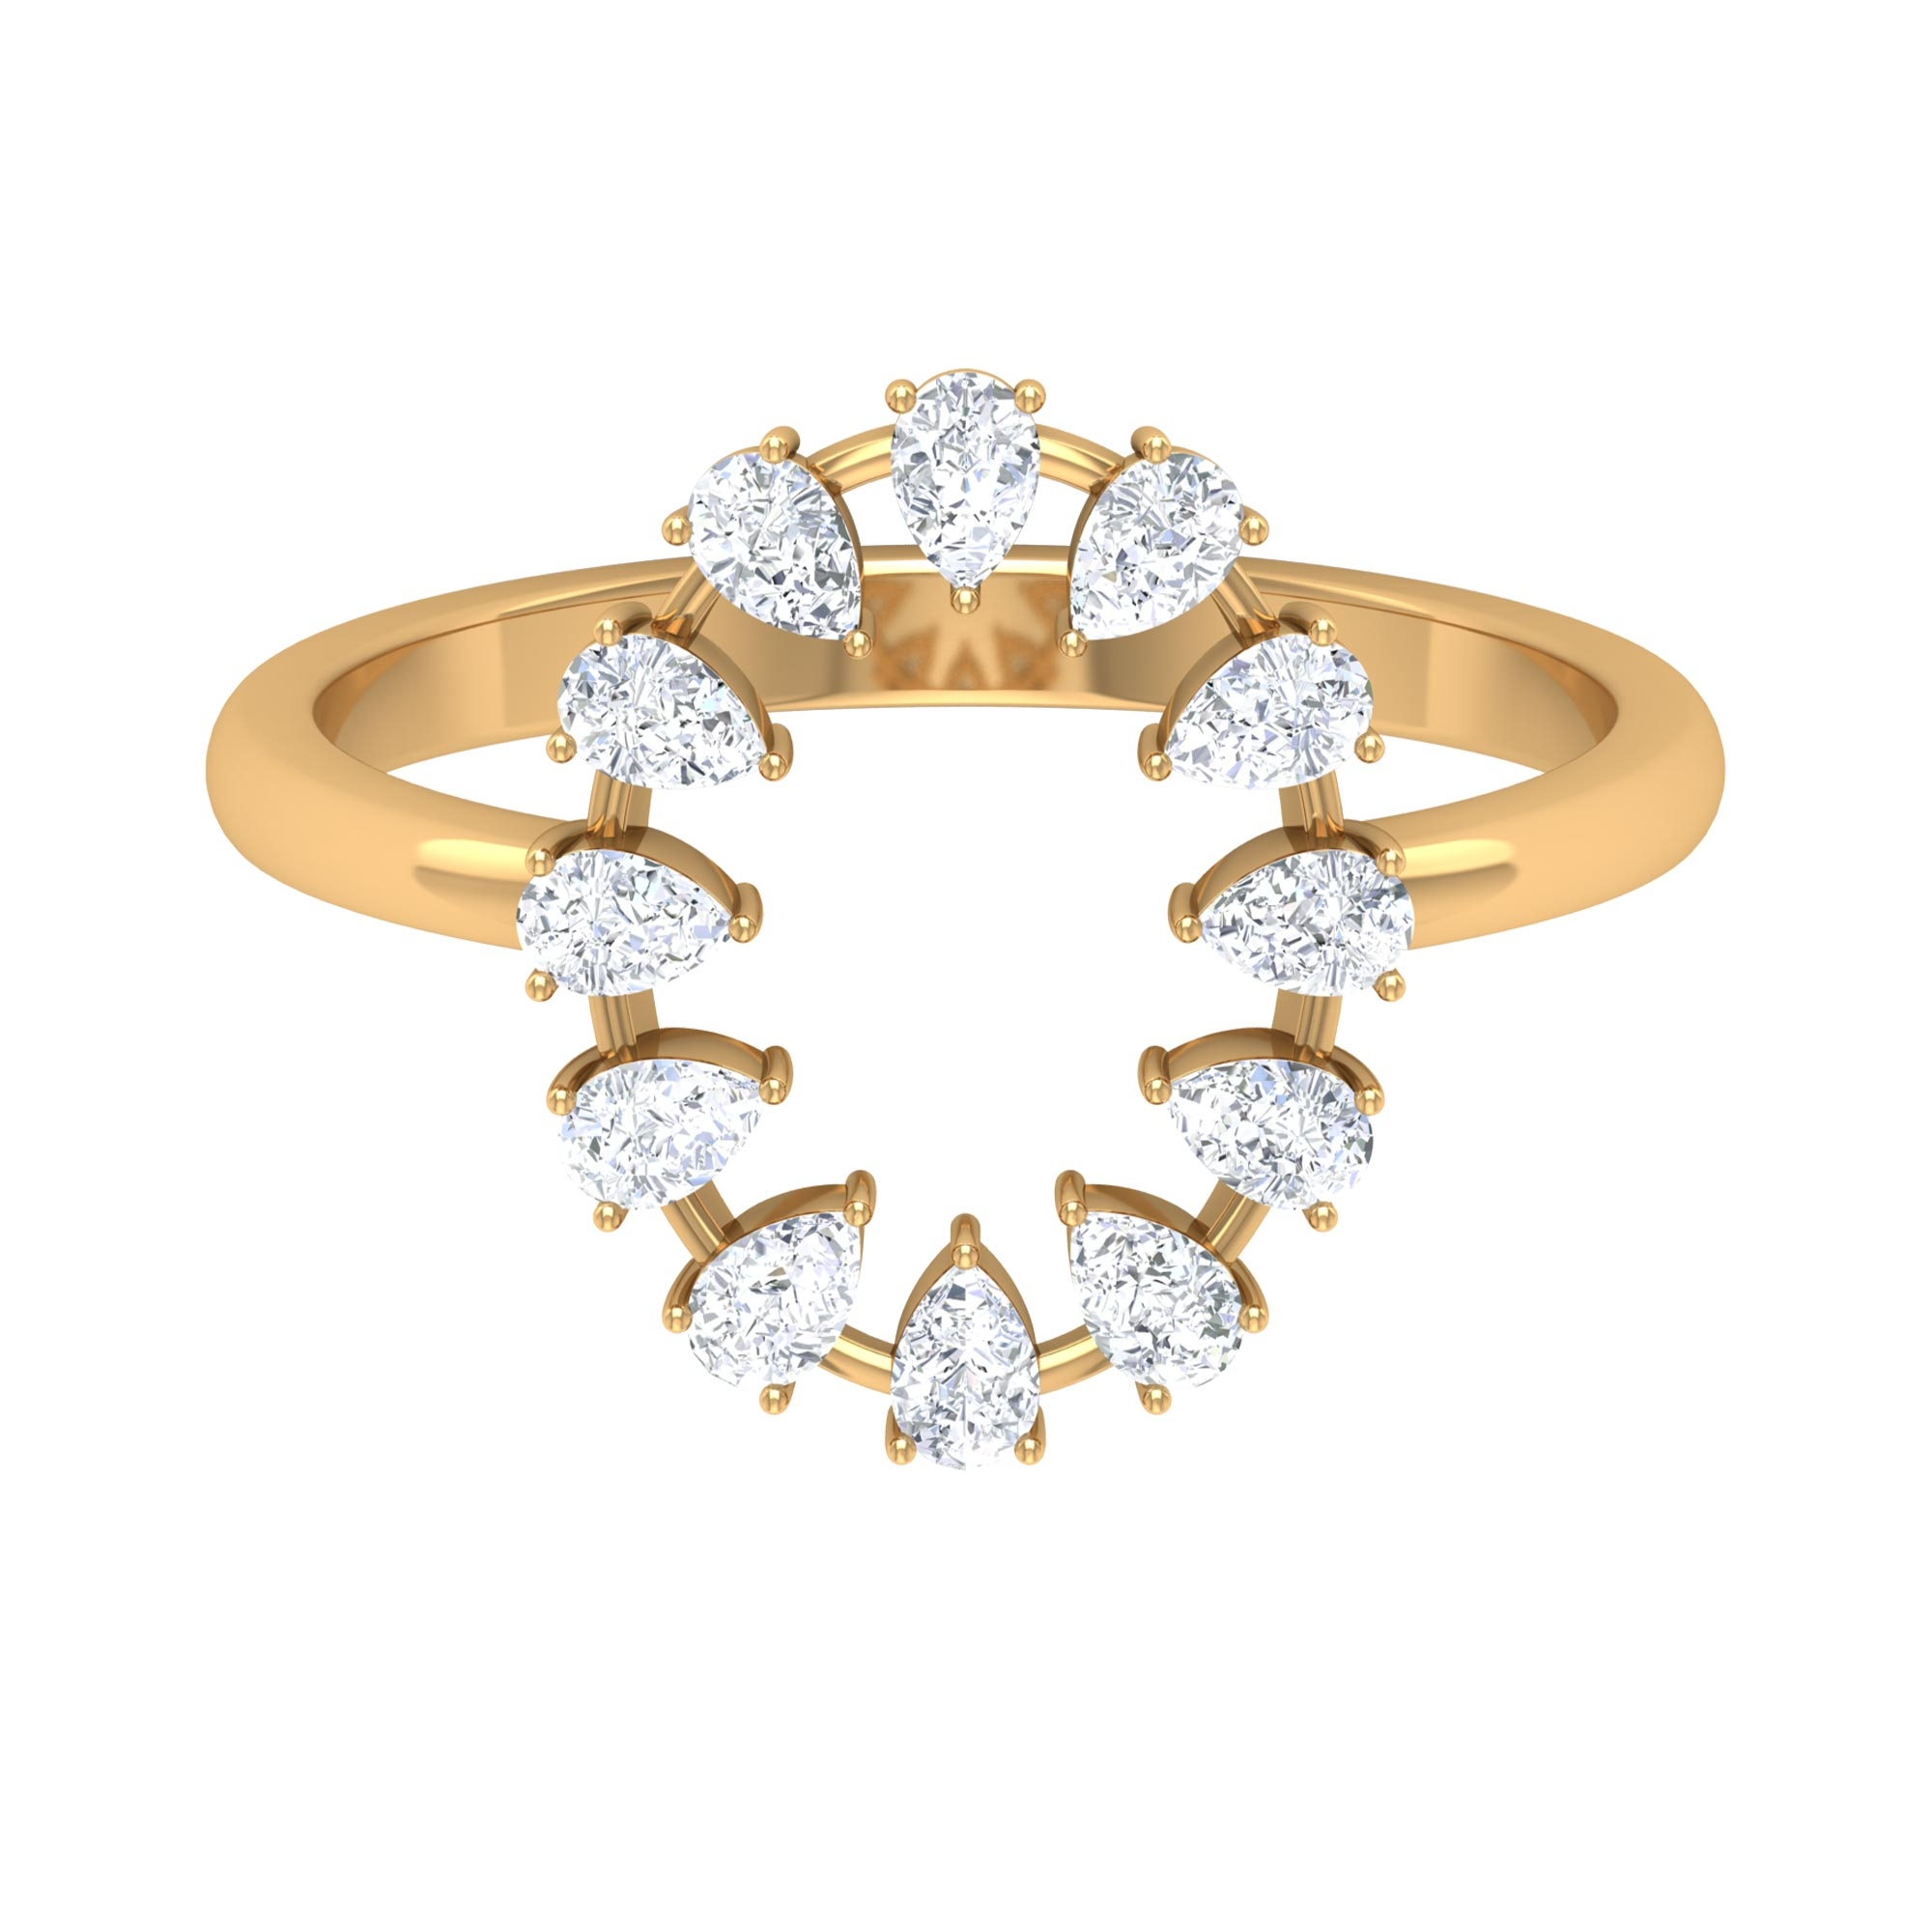 1/2 CT Pear Cut Diamond Open Oval Shape Ring in Prong Setting